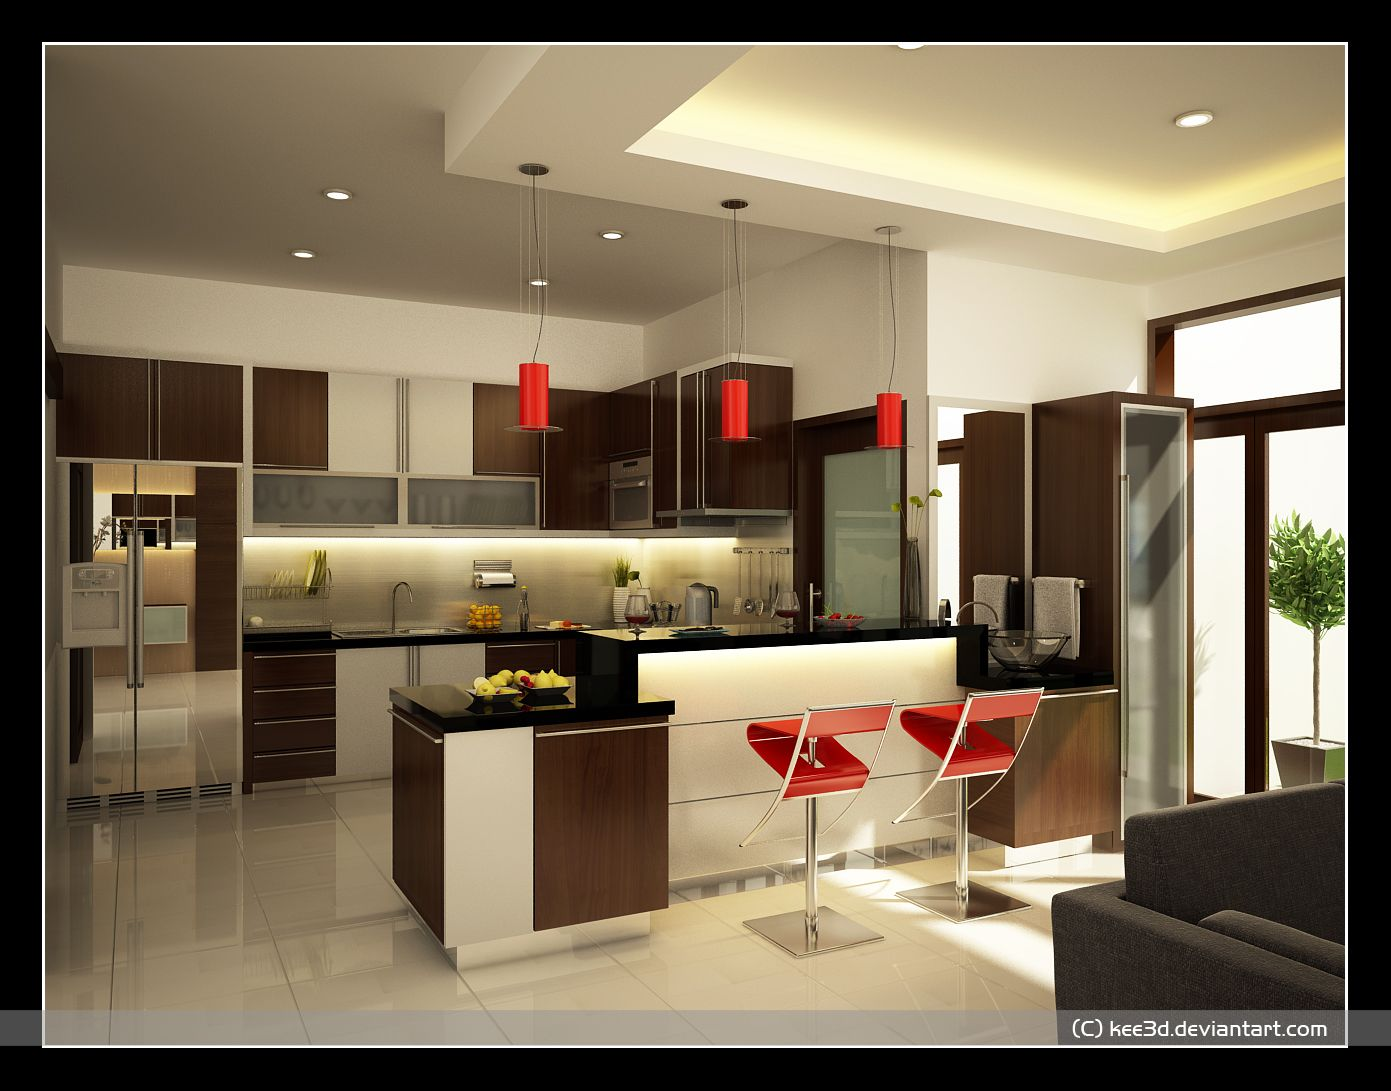 modern red kitchen interior design inspirations modern maroon kitchen design ideas bhutocom kitchen inspiration dom pinterest interior design